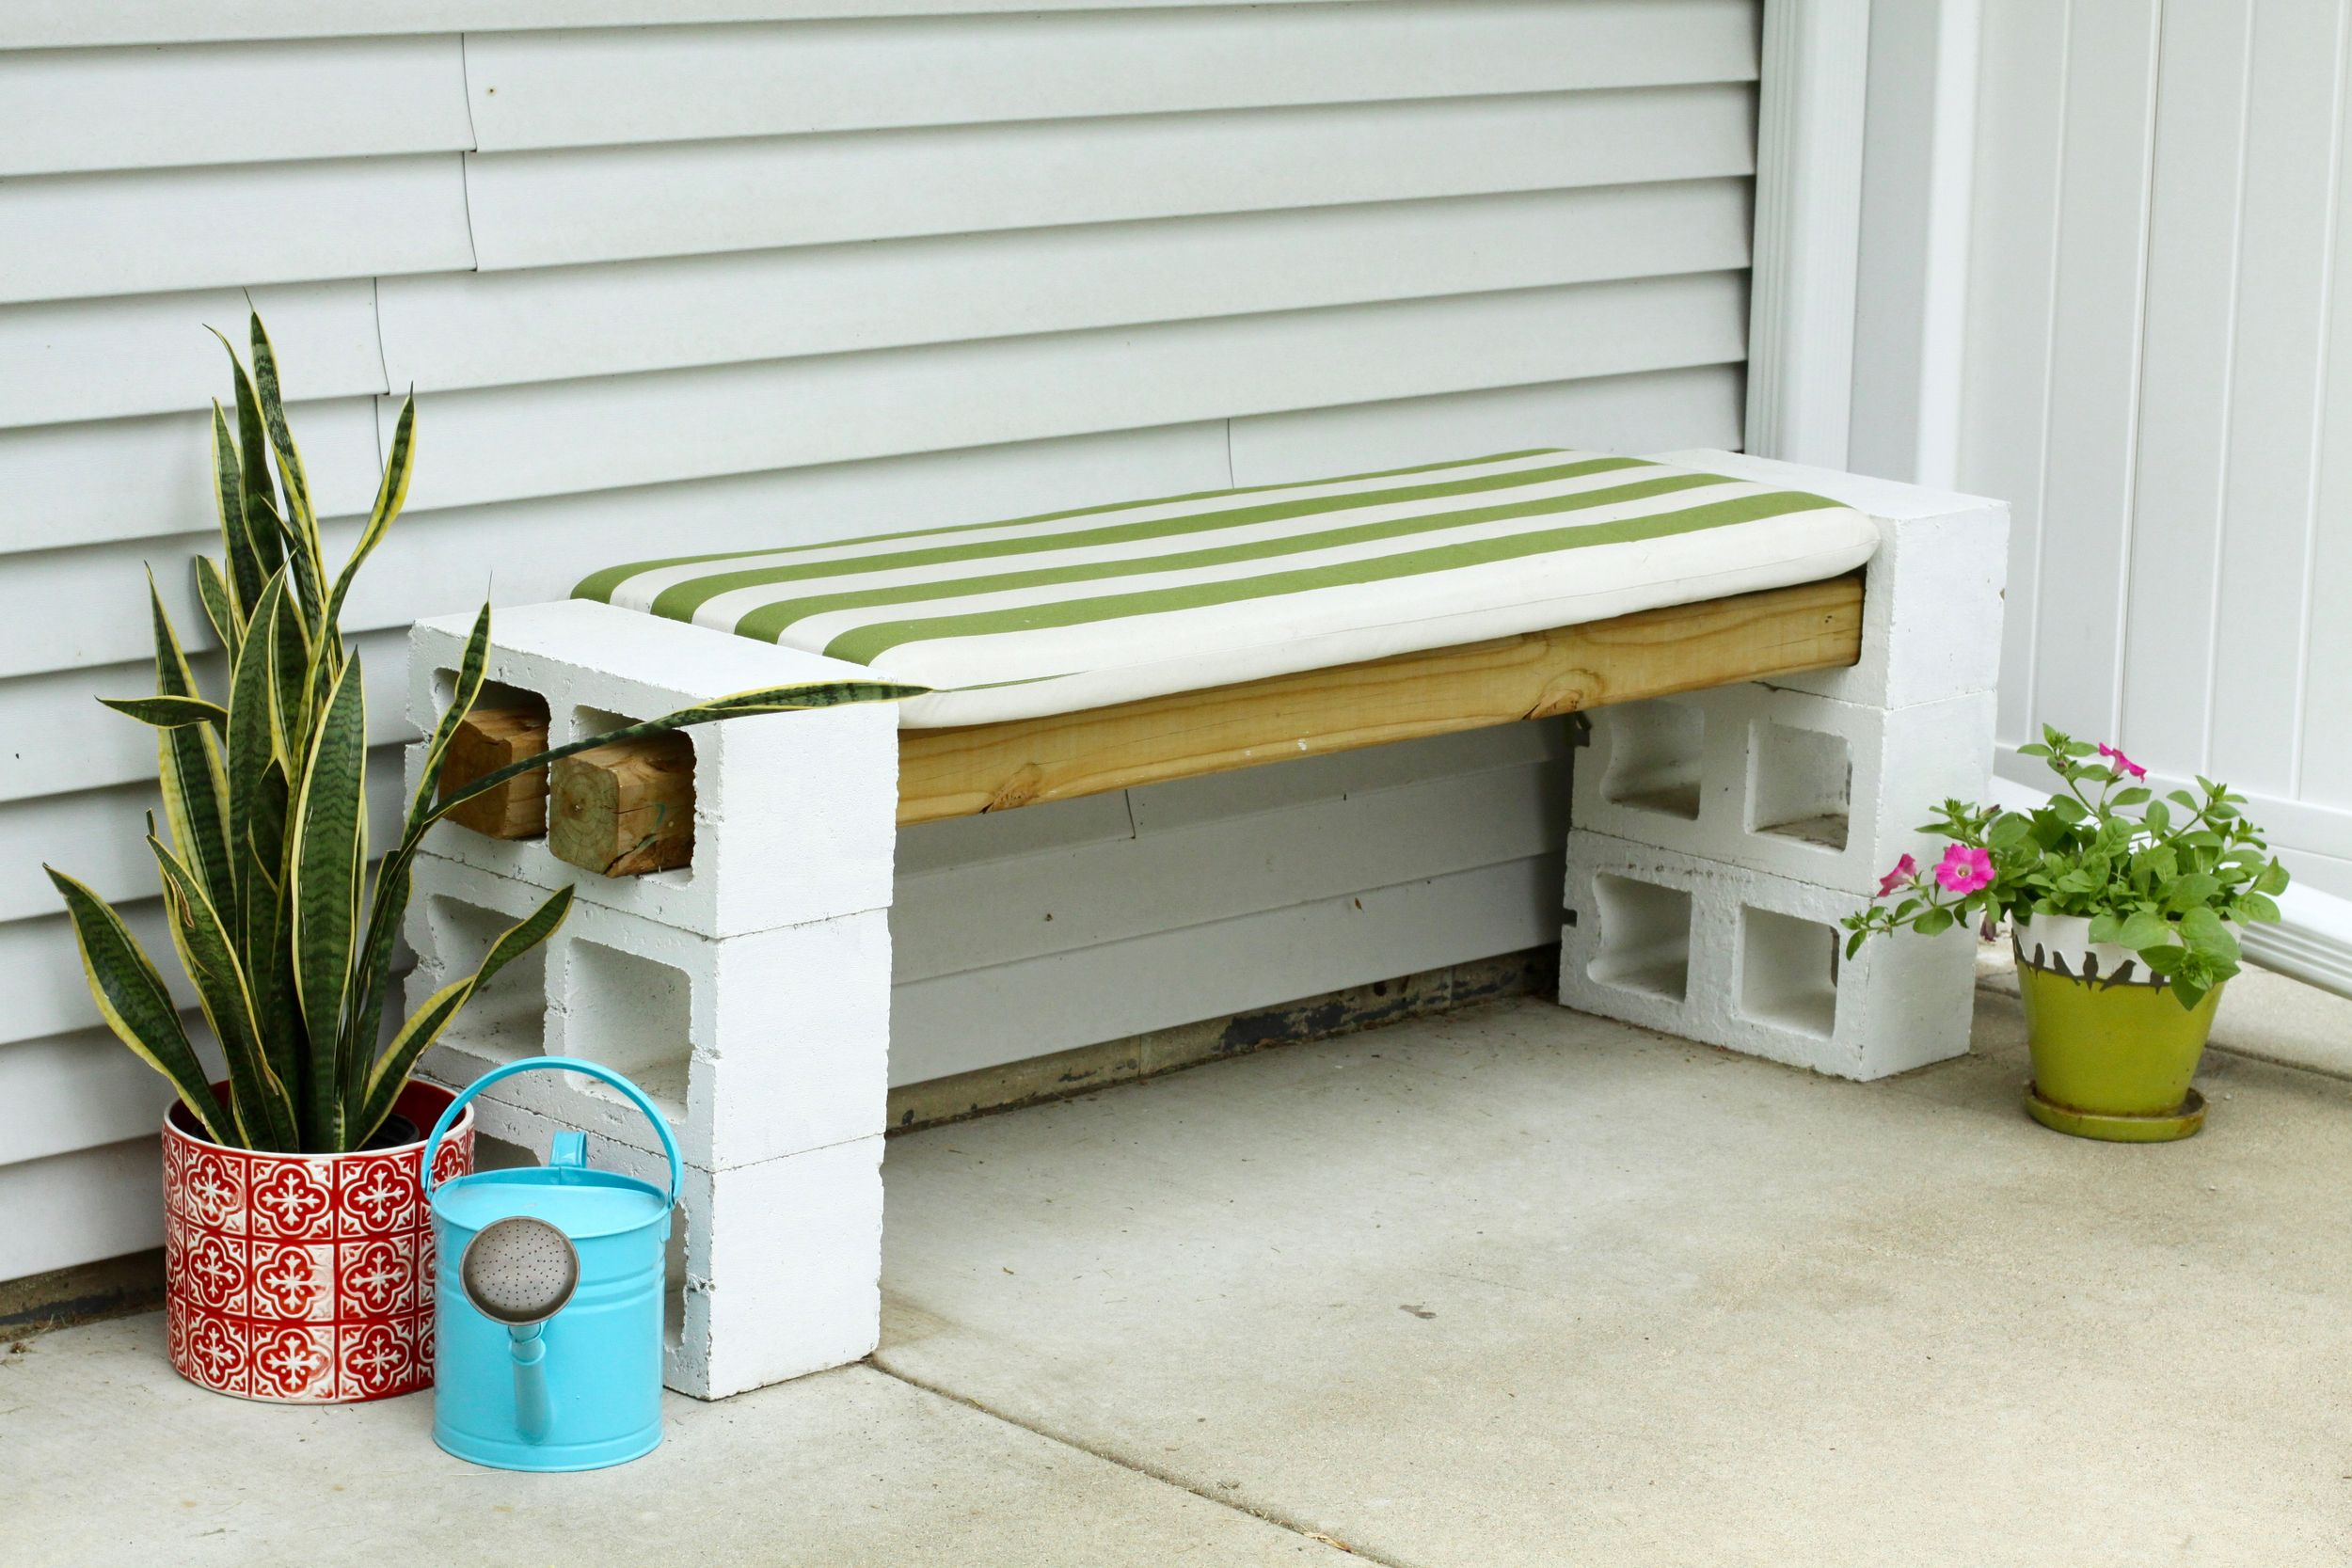 Easy DIY Outdoor Bench (from Cinder Blocks) | Diy bench ... on Simple Cinder Block Fireplace id=95845